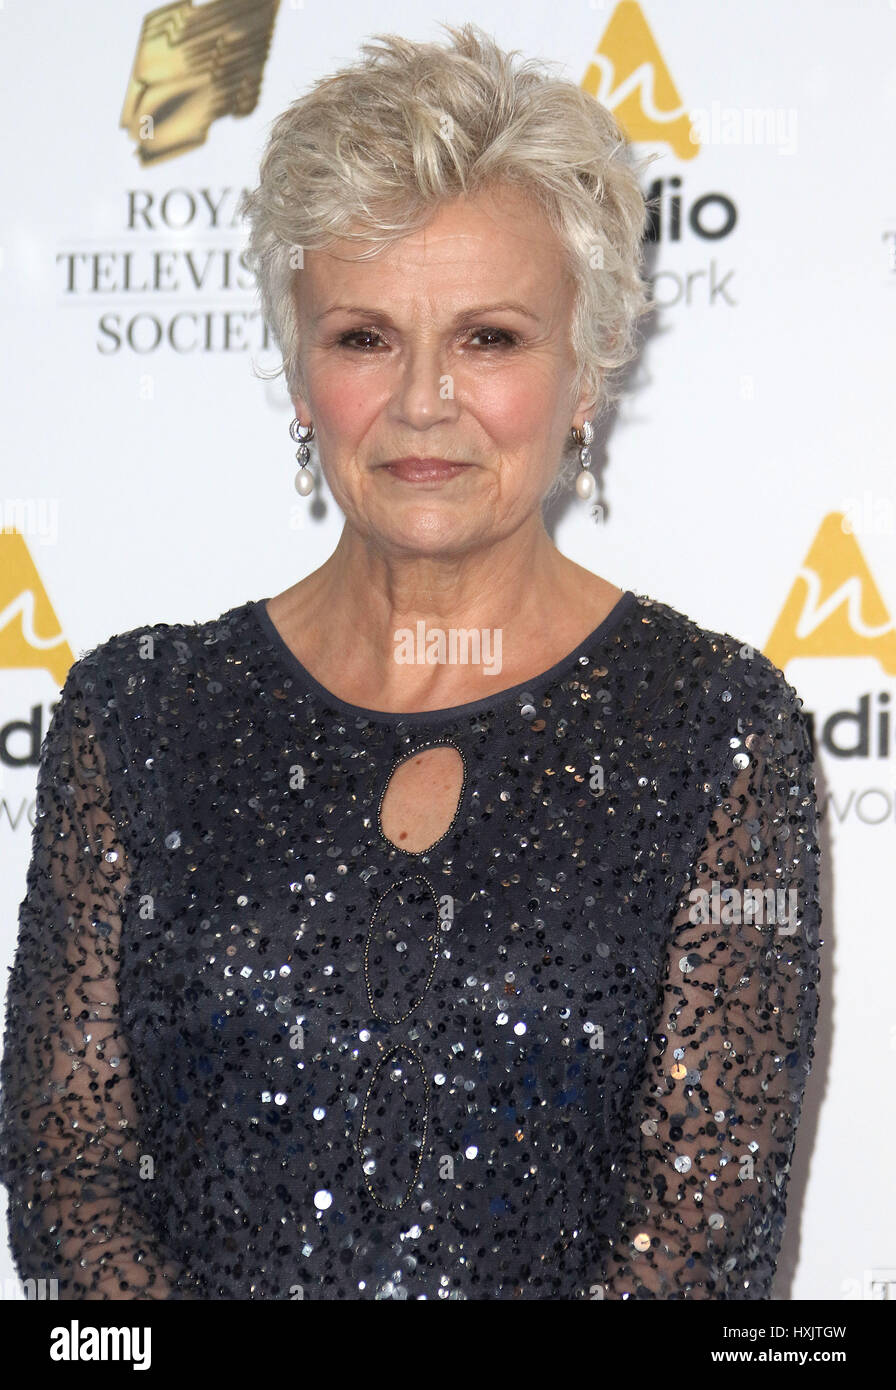 Mar 21, 2017 - Julie Walters asistir Royal Television Society Awards 2017, el Grosvenor House Hotel en Londres, Imagen De Stock